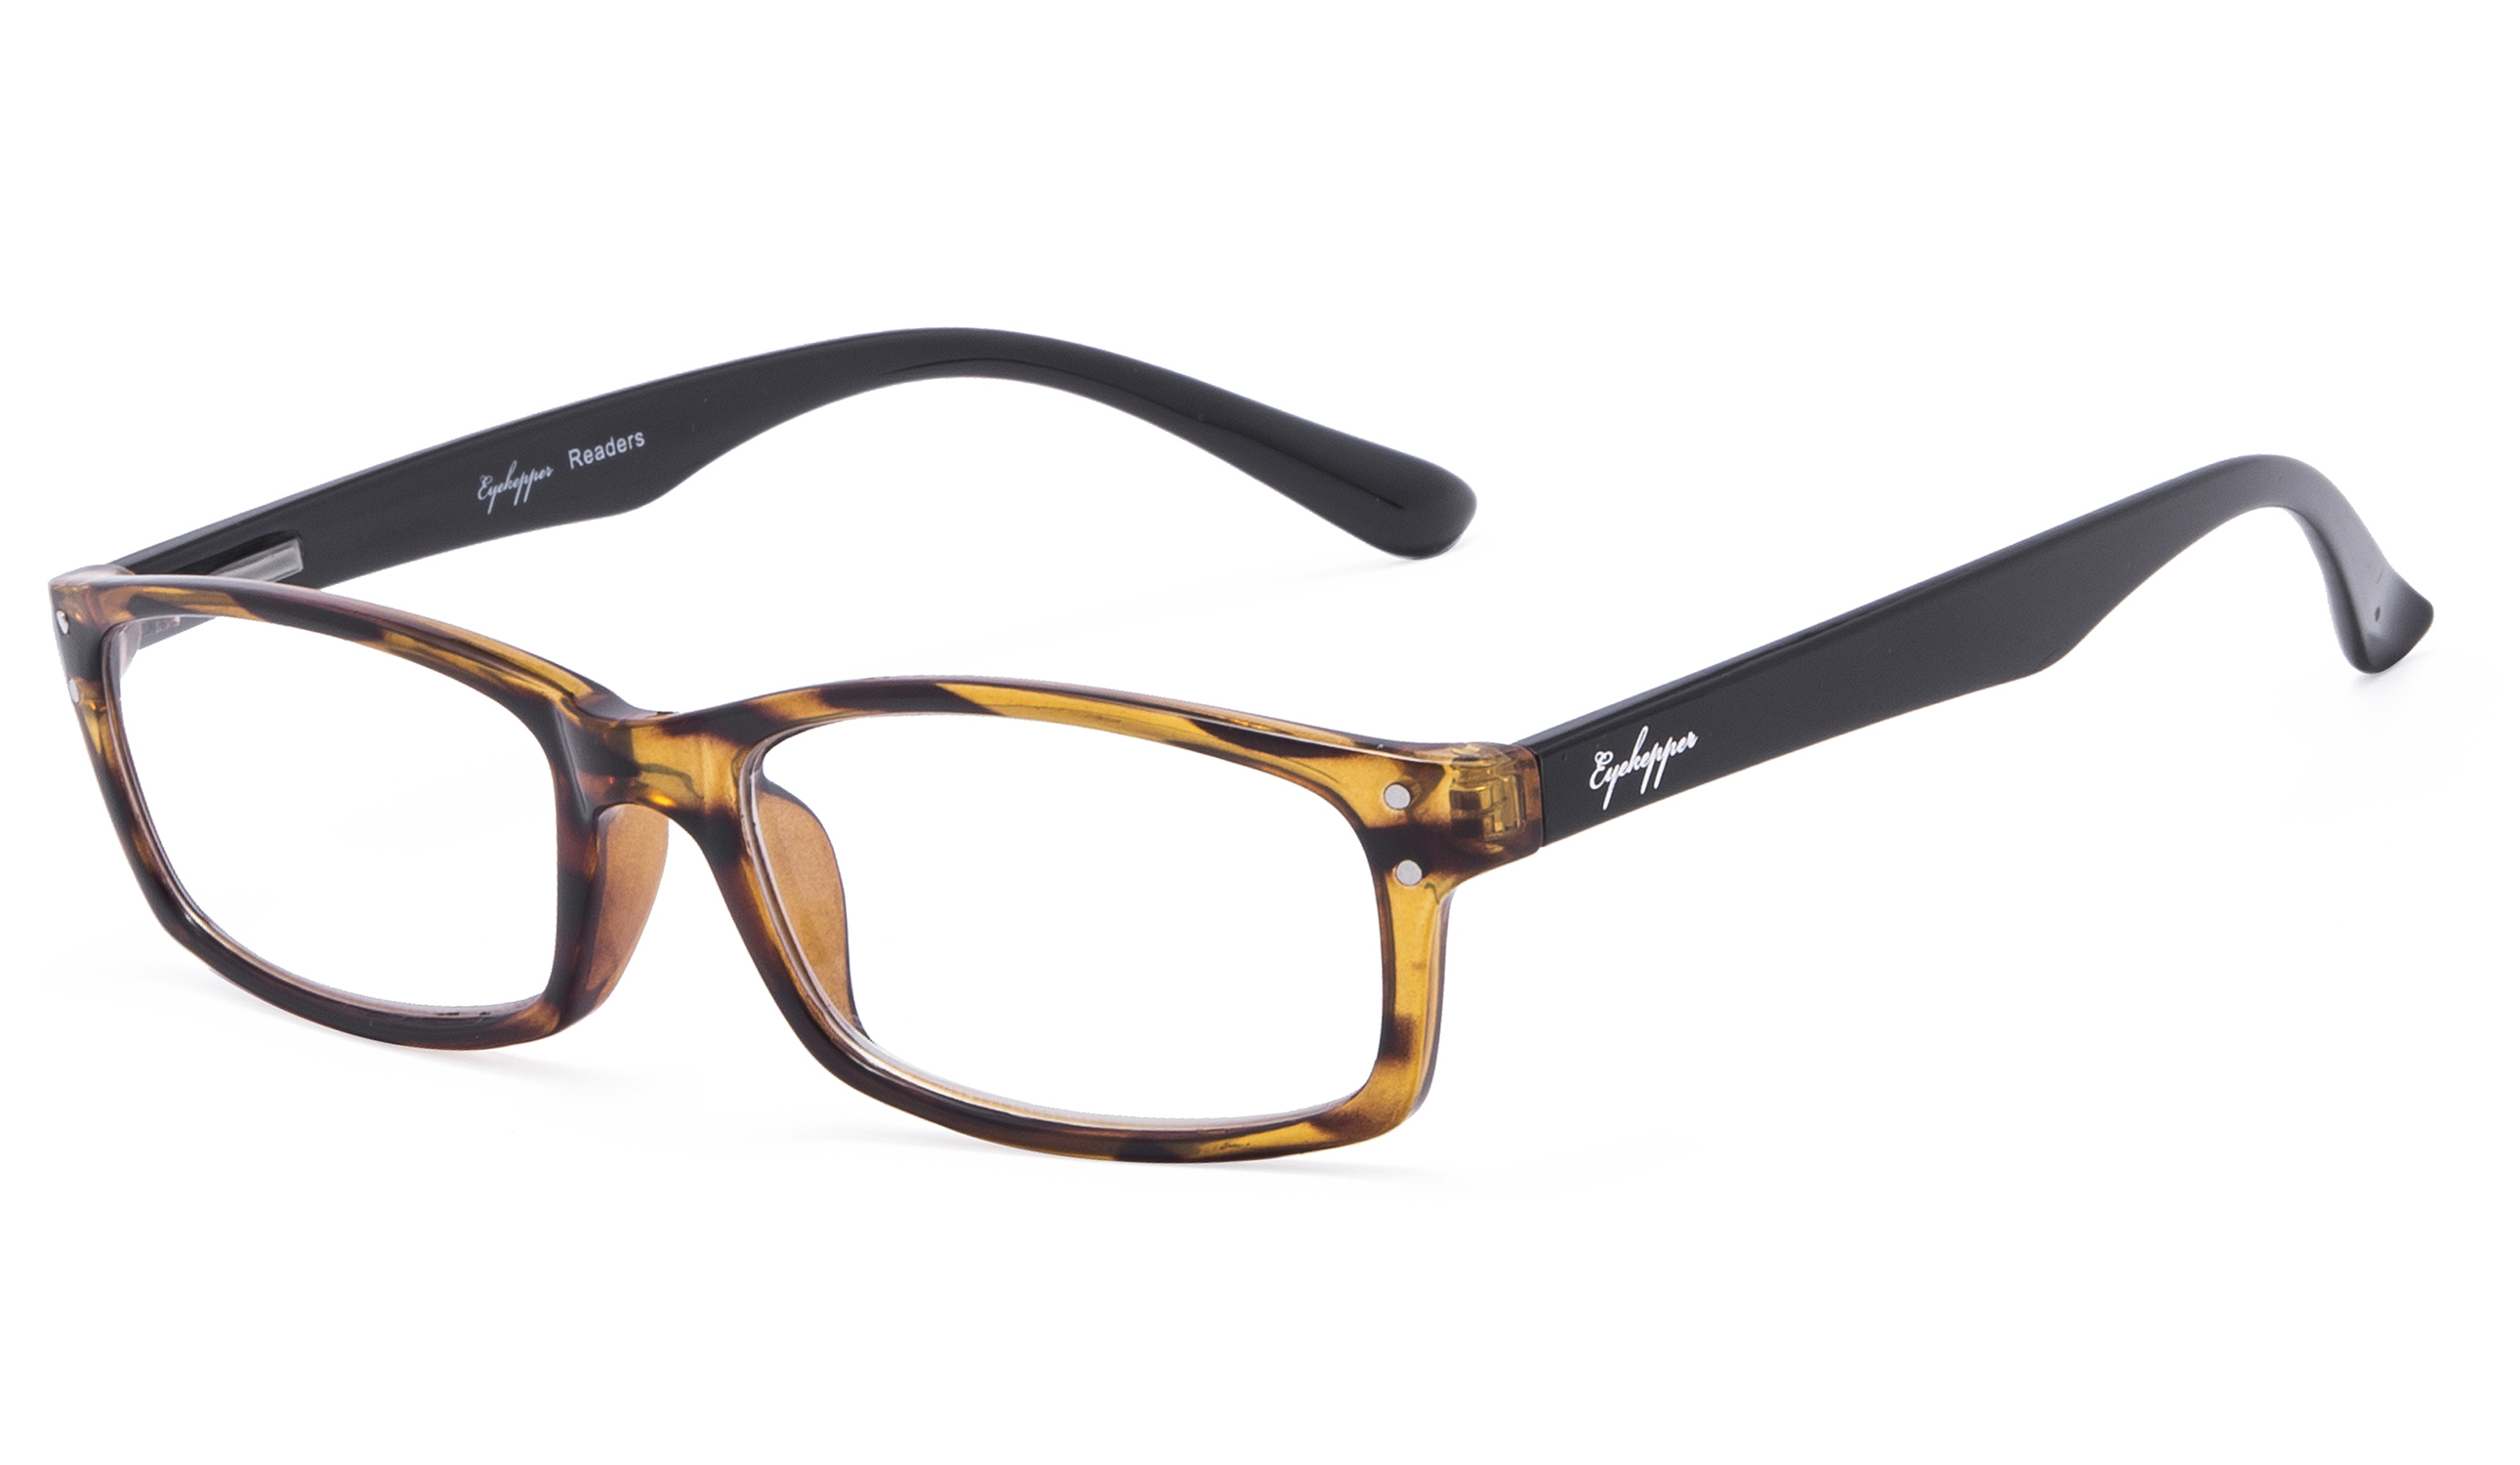 3149a8da0a08 Eyekepper Reading Glasses Classic Rectangle Design Frame with Quality Spring -Hinges Temples Readers Women Men Amber R103